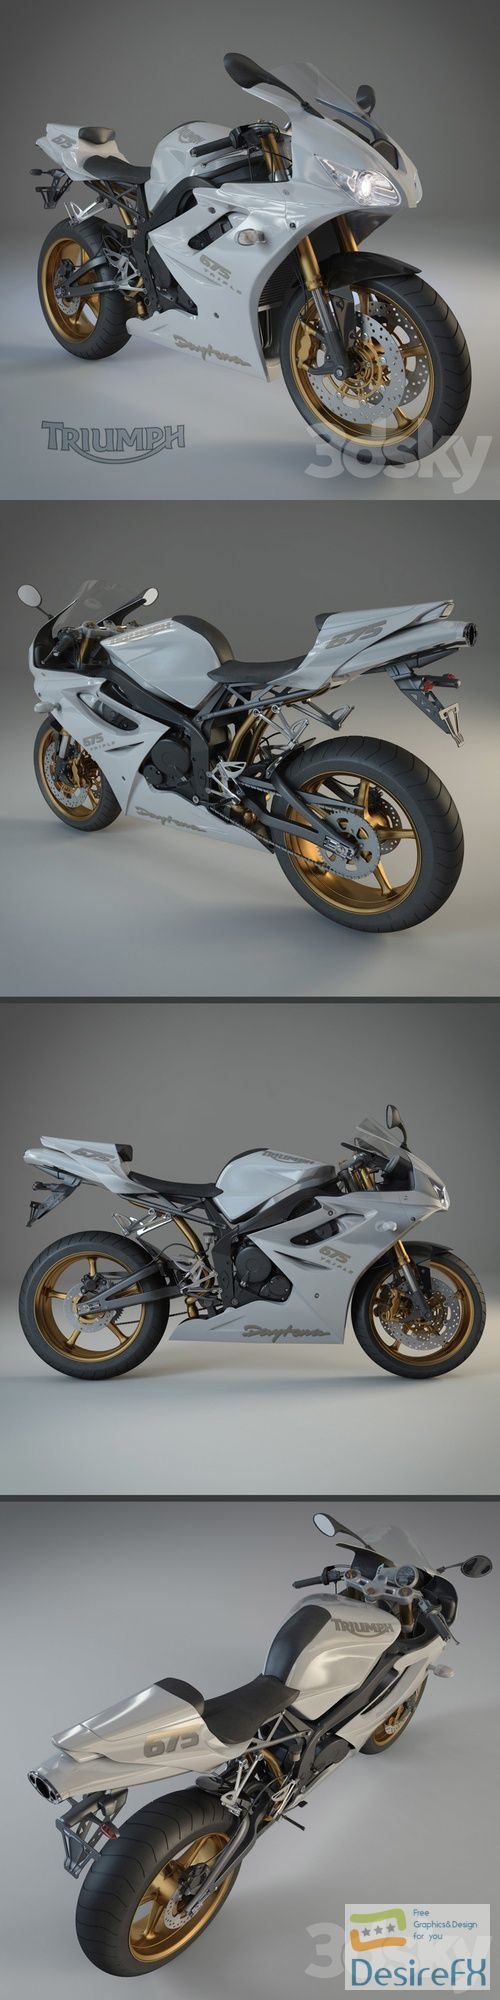 Triumph Daytona 675 SE 3D Model